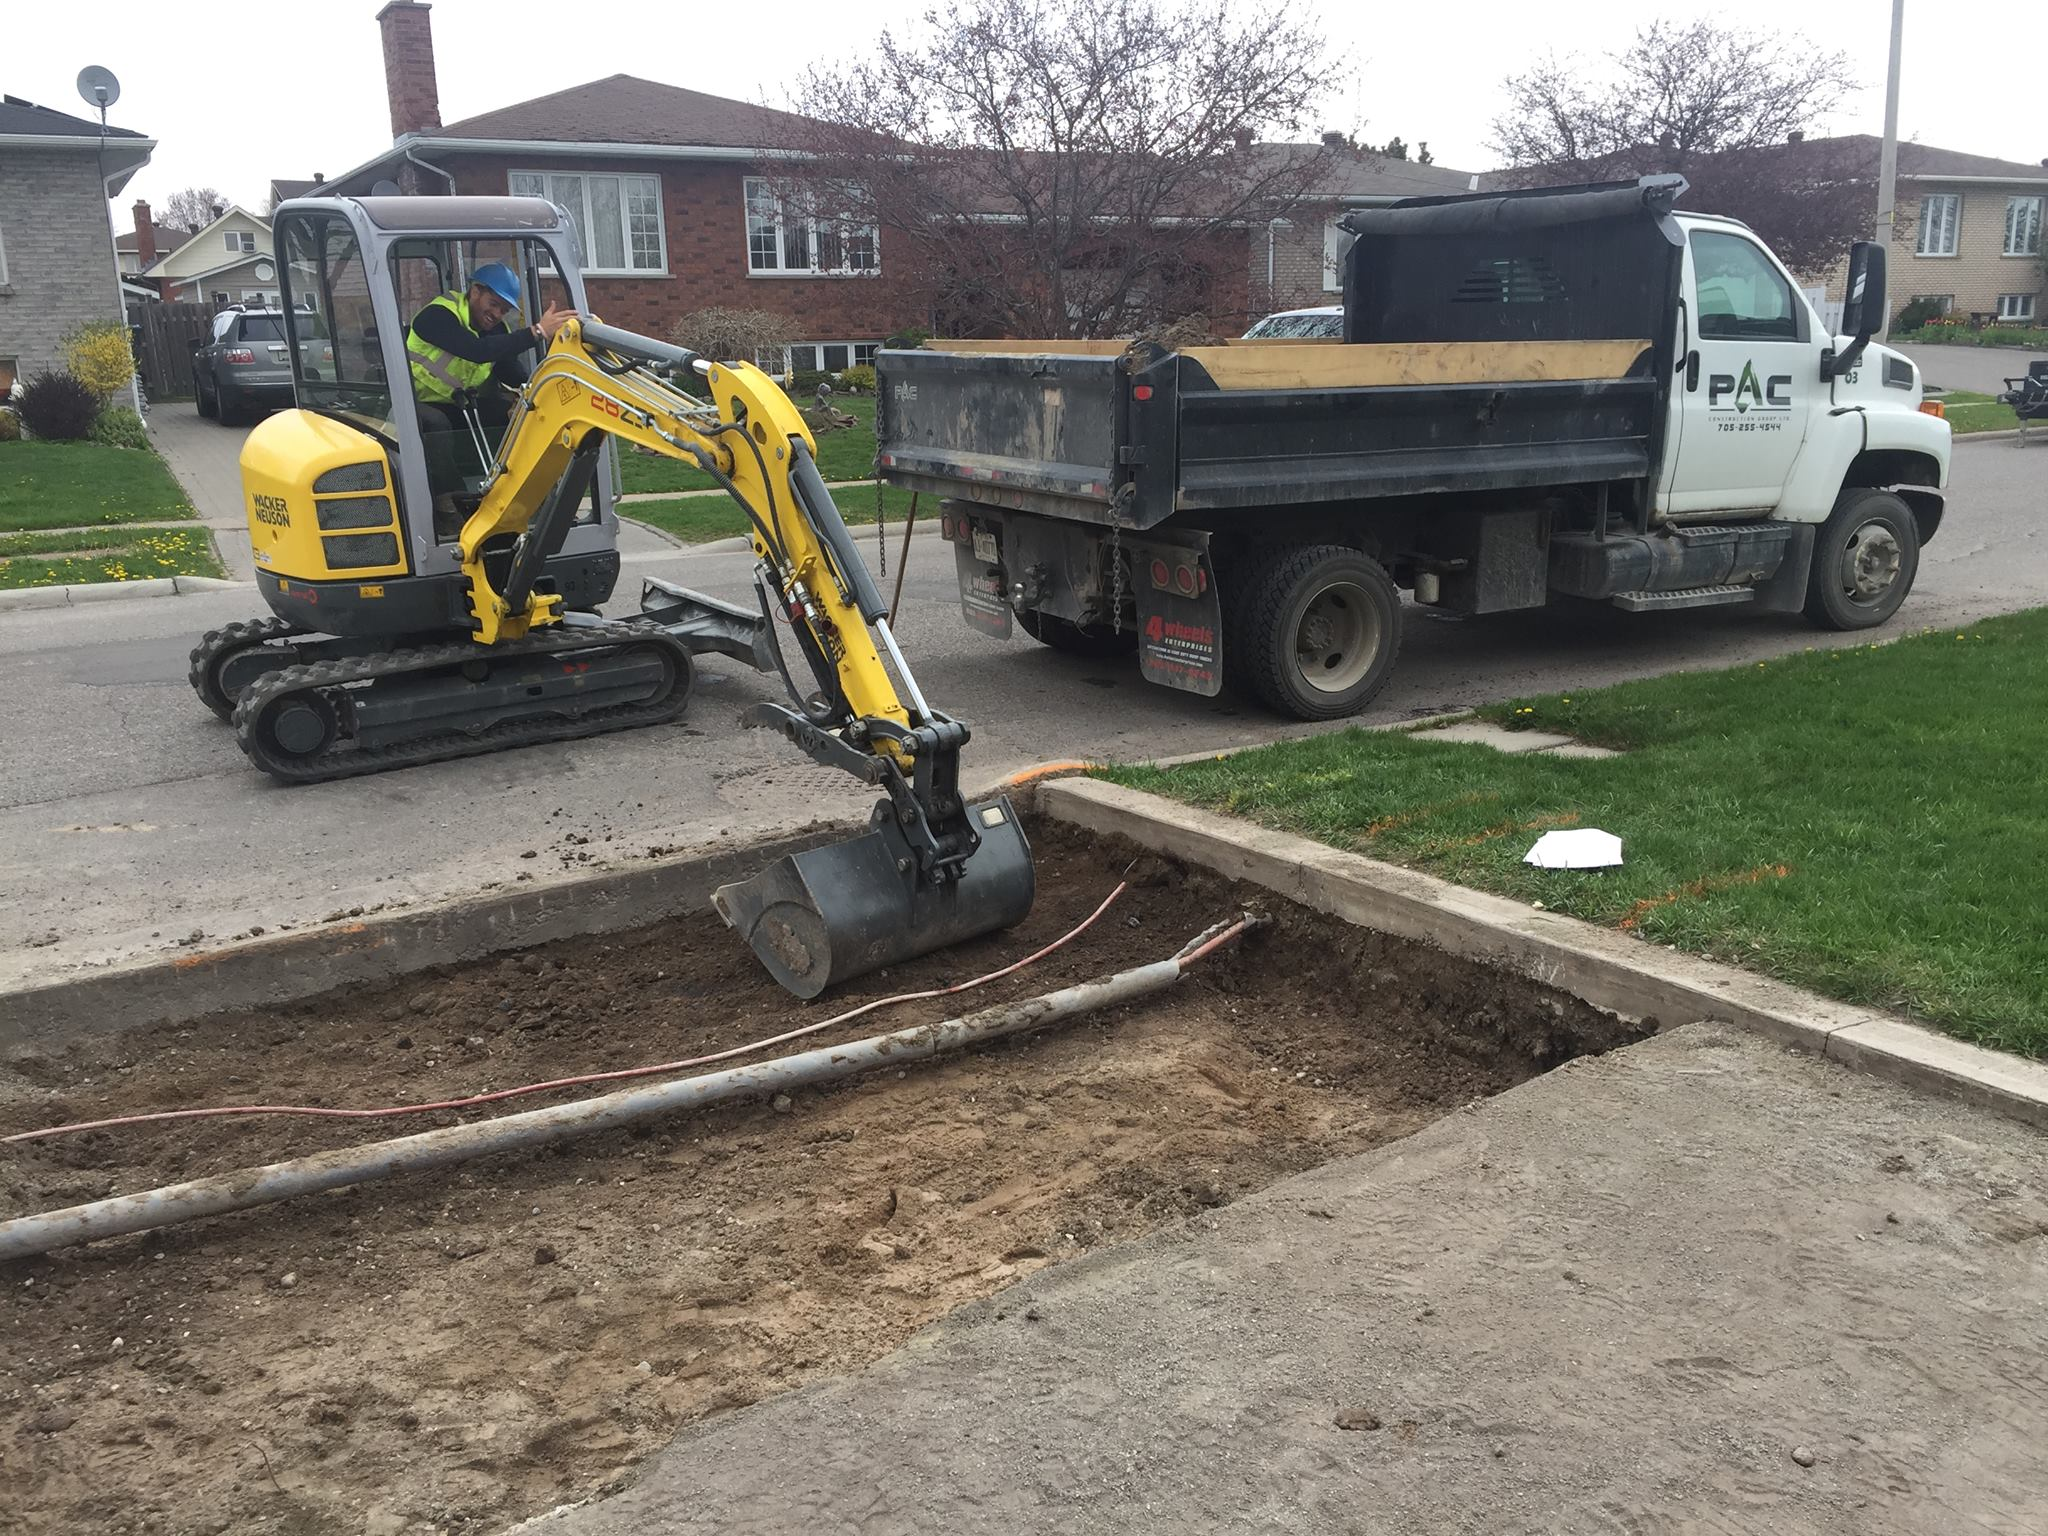 Driveway Excavation - Power and Cable Exposed